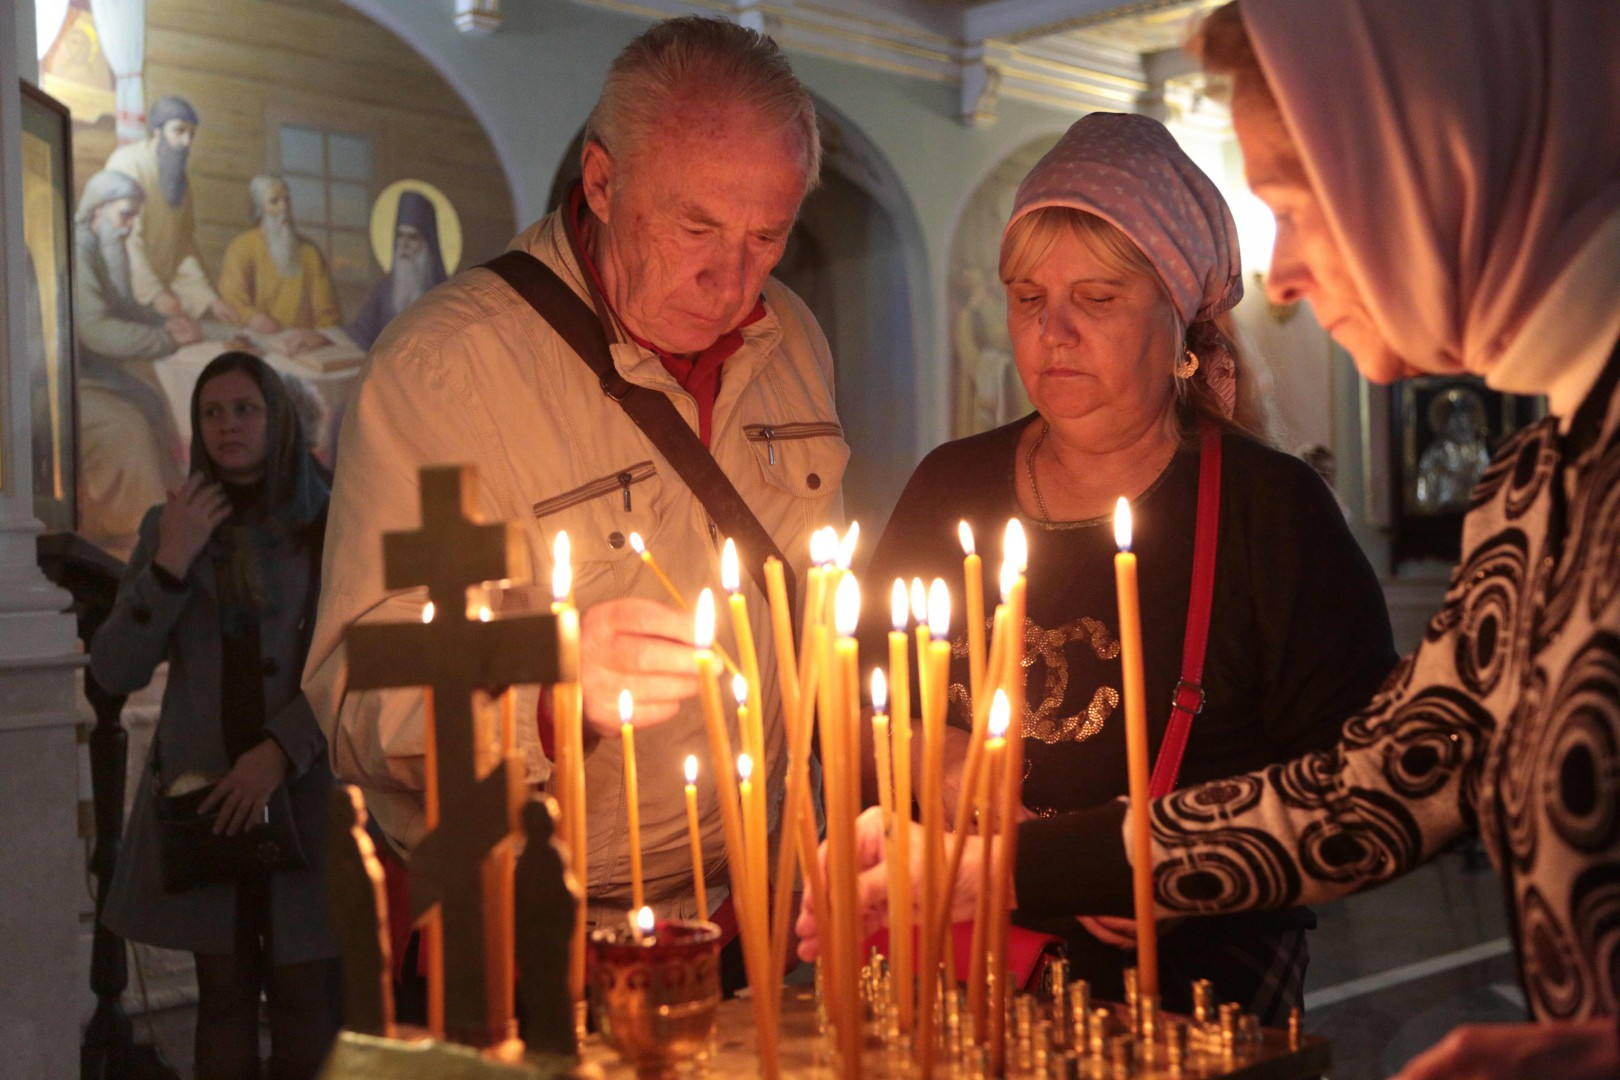 People light candles during a church service for the victims of the Kerch's college in Simferopol, Crimea, on October 18, 2018, after a teenage gunman shot dead at least 18 people and injured dozens before killing himself at a technical college where he was a student in Russian-annexed Crimea on October 17. (Photo by STR / AFP)